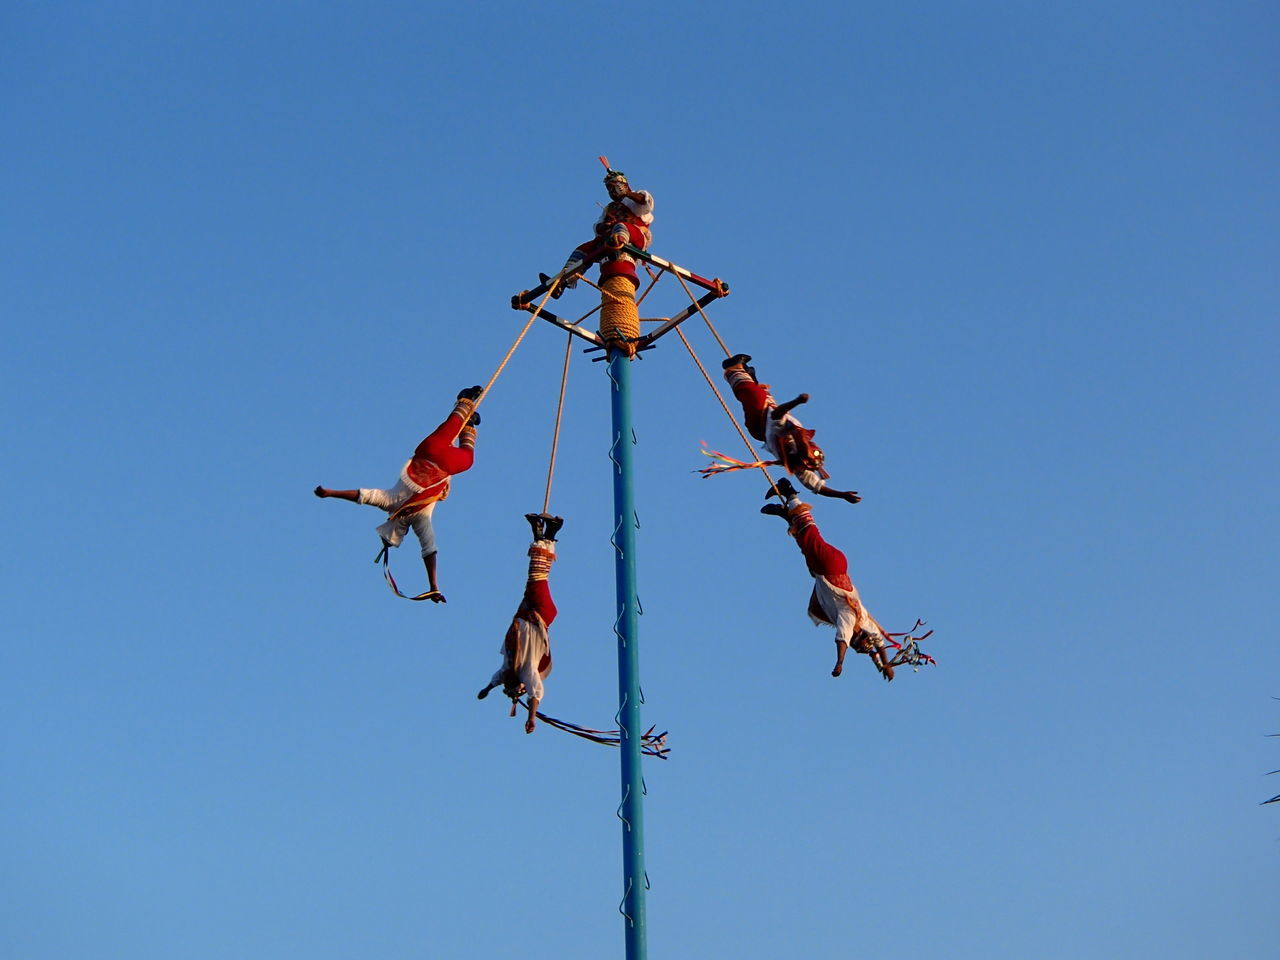 Trip in Playa del Carmen Blue Clear Sky Flying Hanging Low Angle View Mexico Motion Outdoors Sky Teamwork Traditional Culture Blue Wave